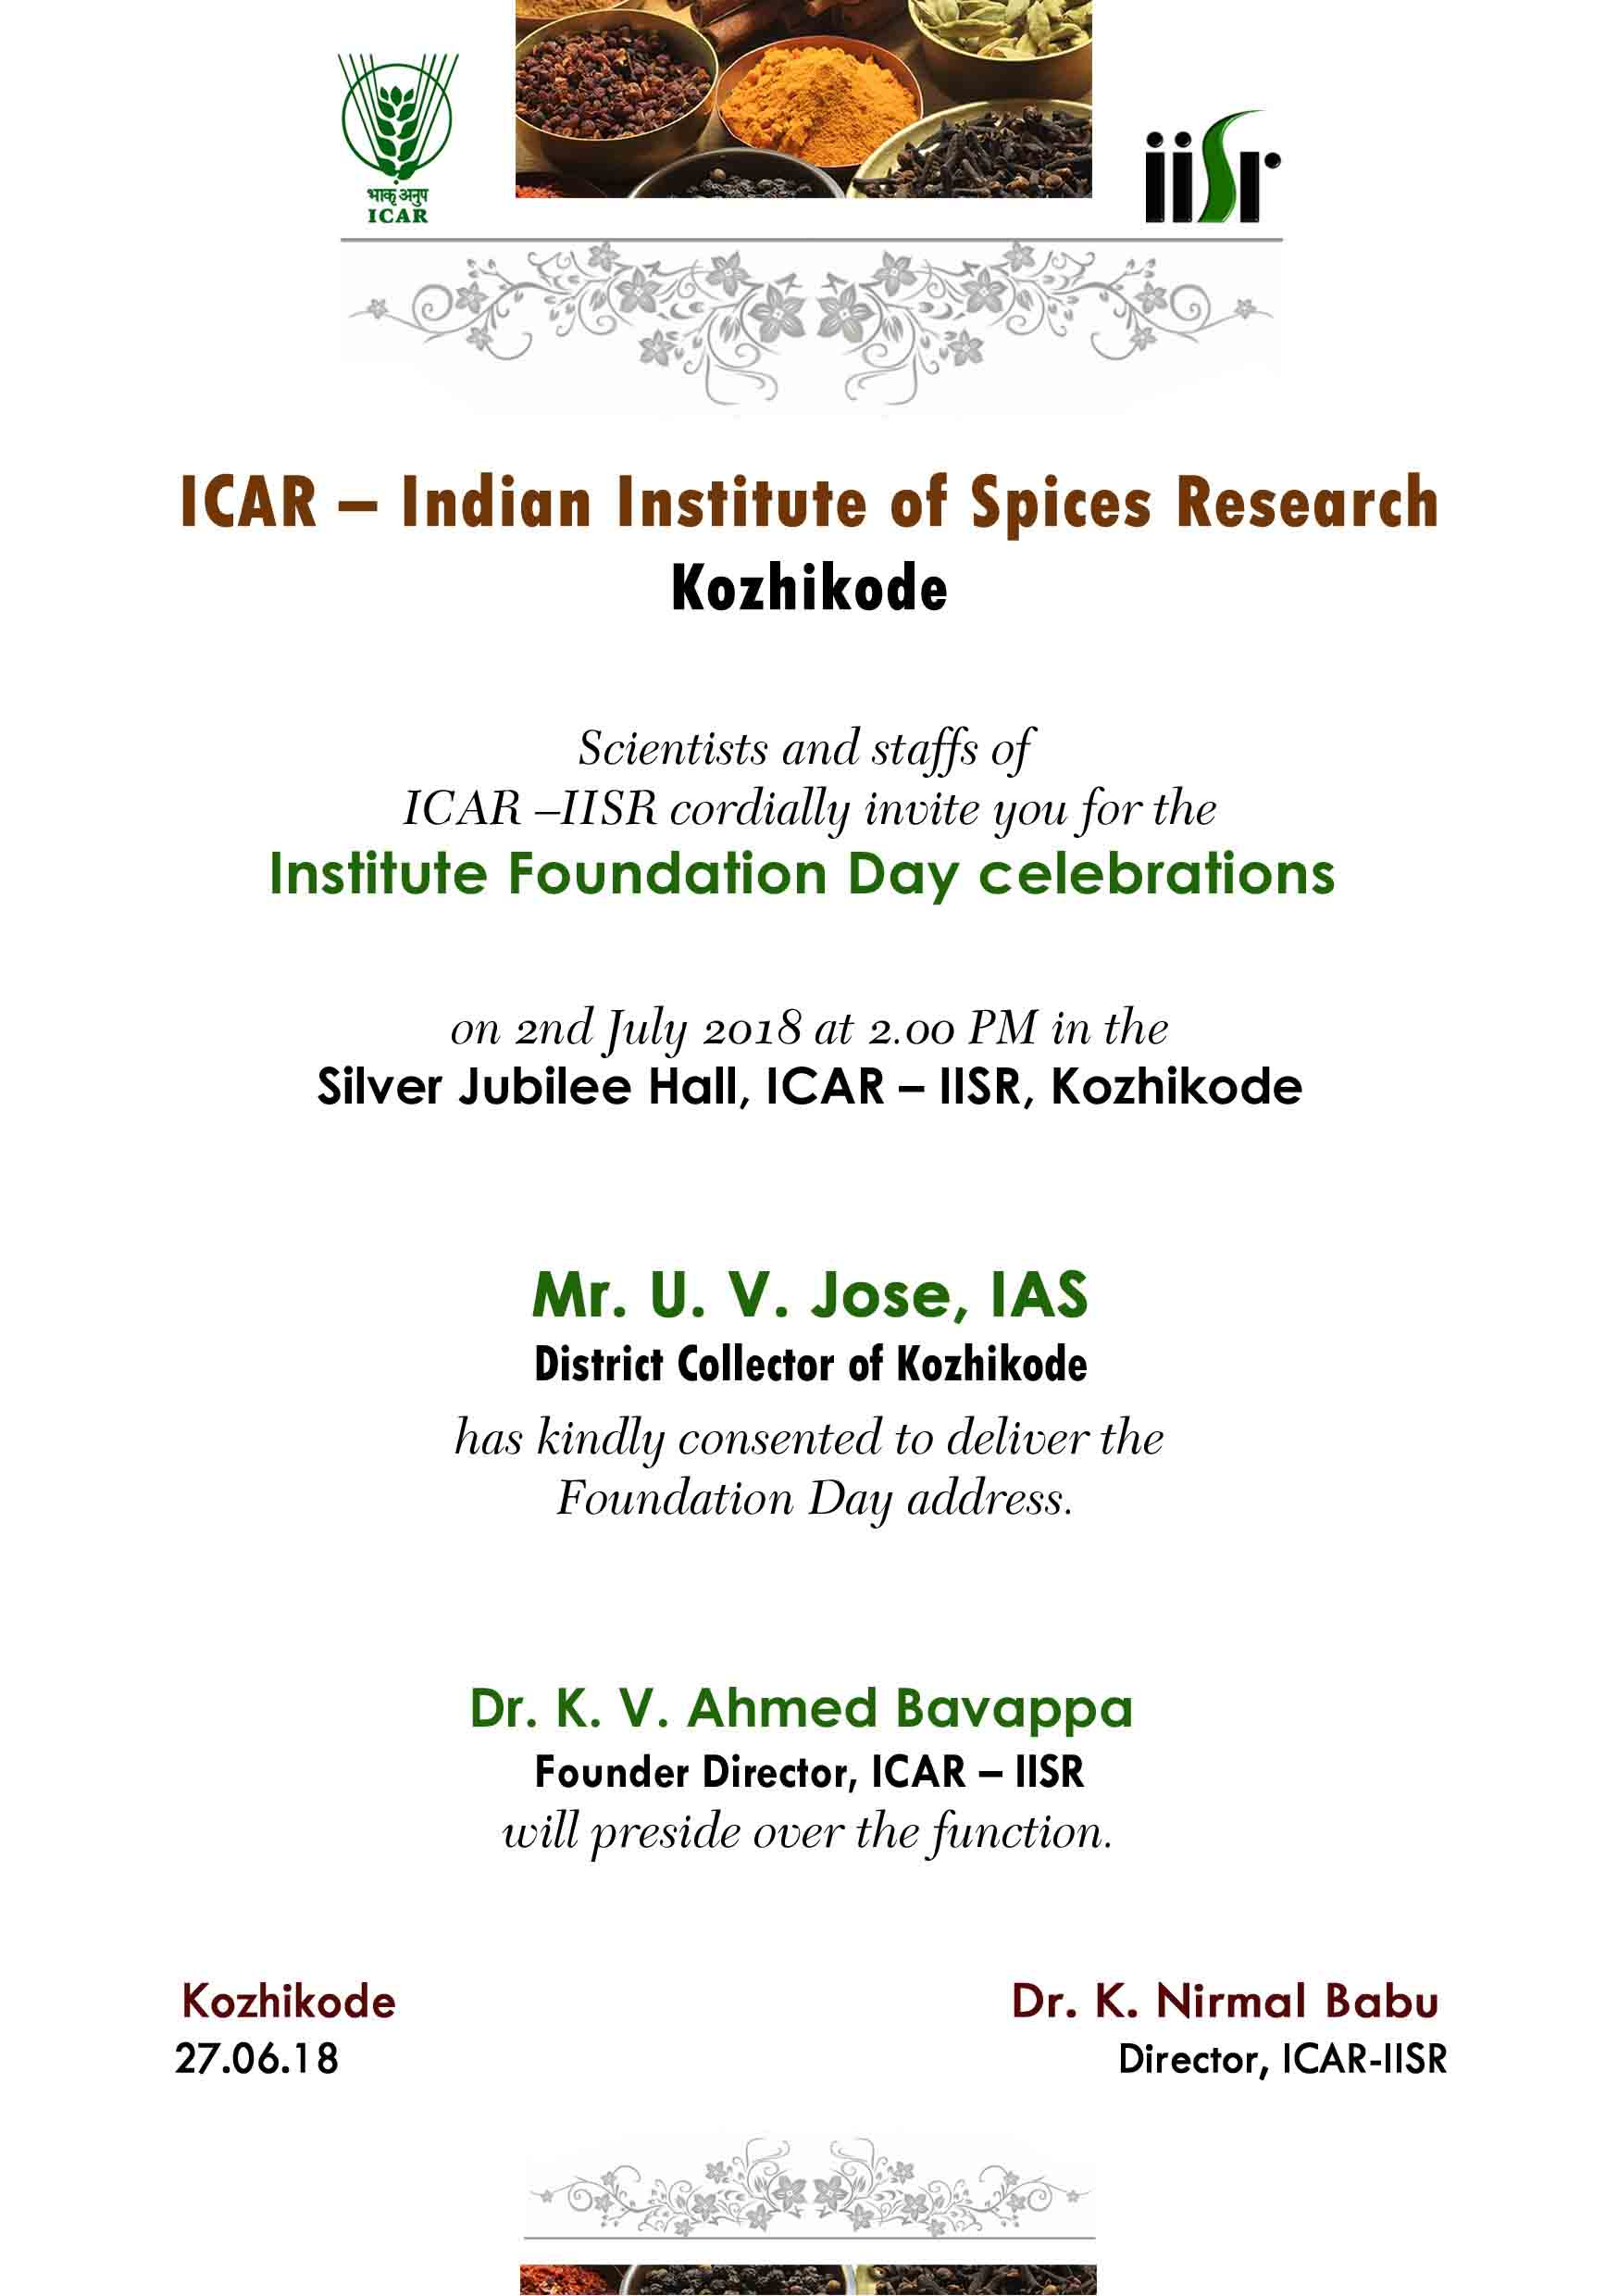 Institute Foundation Day Celebration on 2 July 2018